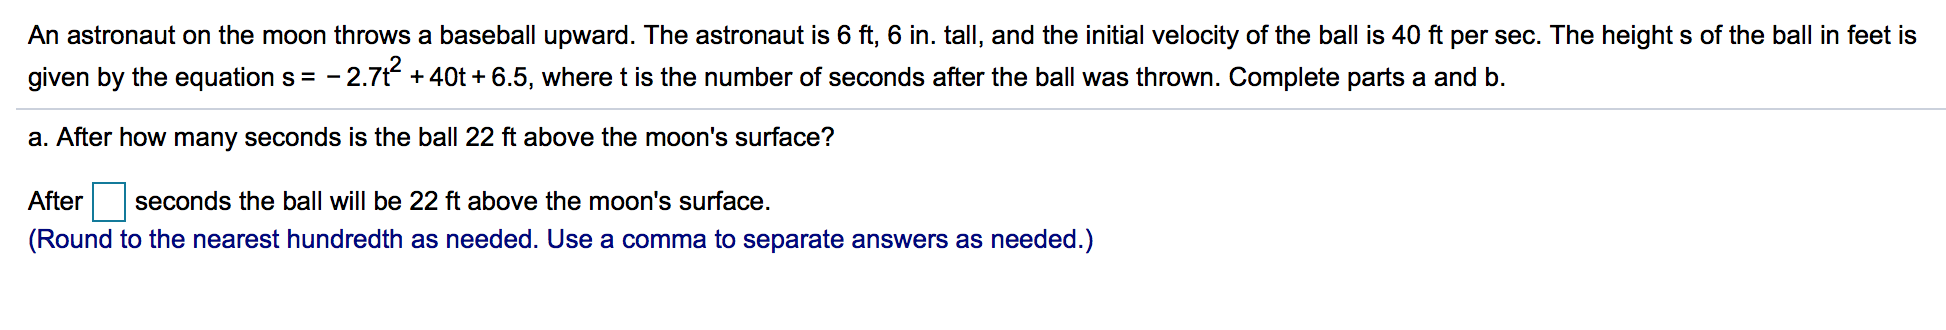 An astronaut on the moon throws a baseball upward. The astronaut is 6 ft, 6 in. tall, and the initial velocity of the ball is 40 ft per sec. The height s of the ball in feet is given by the equation s =-2.7t + 40t + 6.5, where t is the number of seconds after the ball was thrown. Complete parts a and b. a. After how many seconds is the ball 22 ft above the moon's surface? After seconds the ball will be 22 ft above the moon's surface. (Round to the nearest hundredth as needed. Use a comma to separate answers as needed.) 2